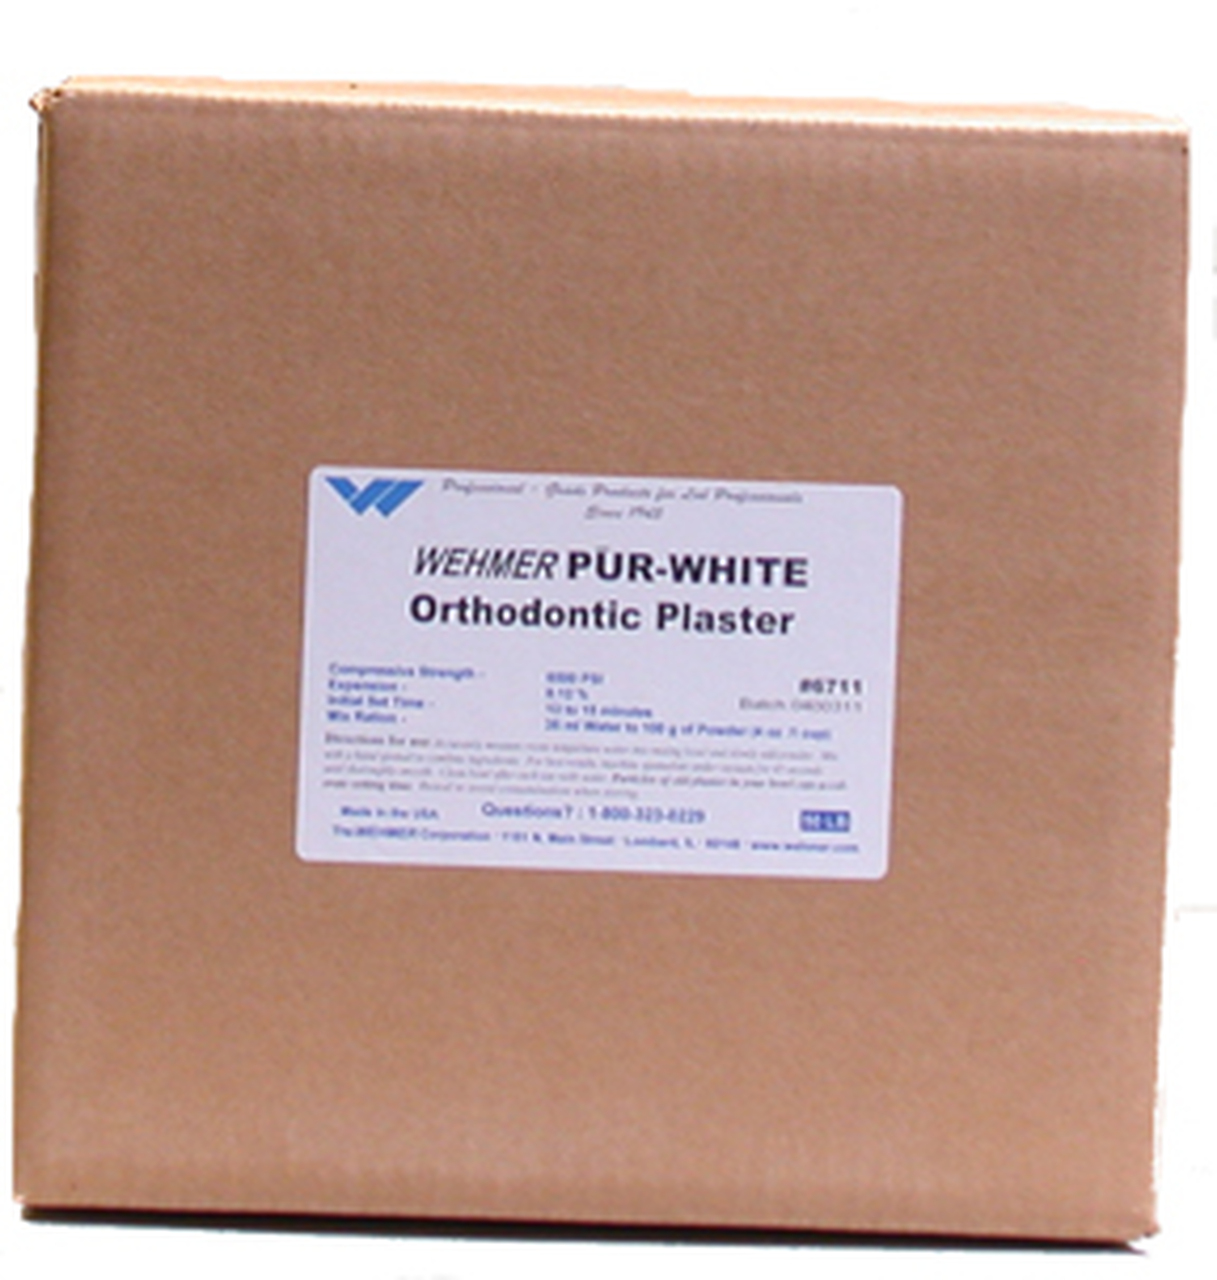 Pur-White Orthodontic Plaster - 50 lbs